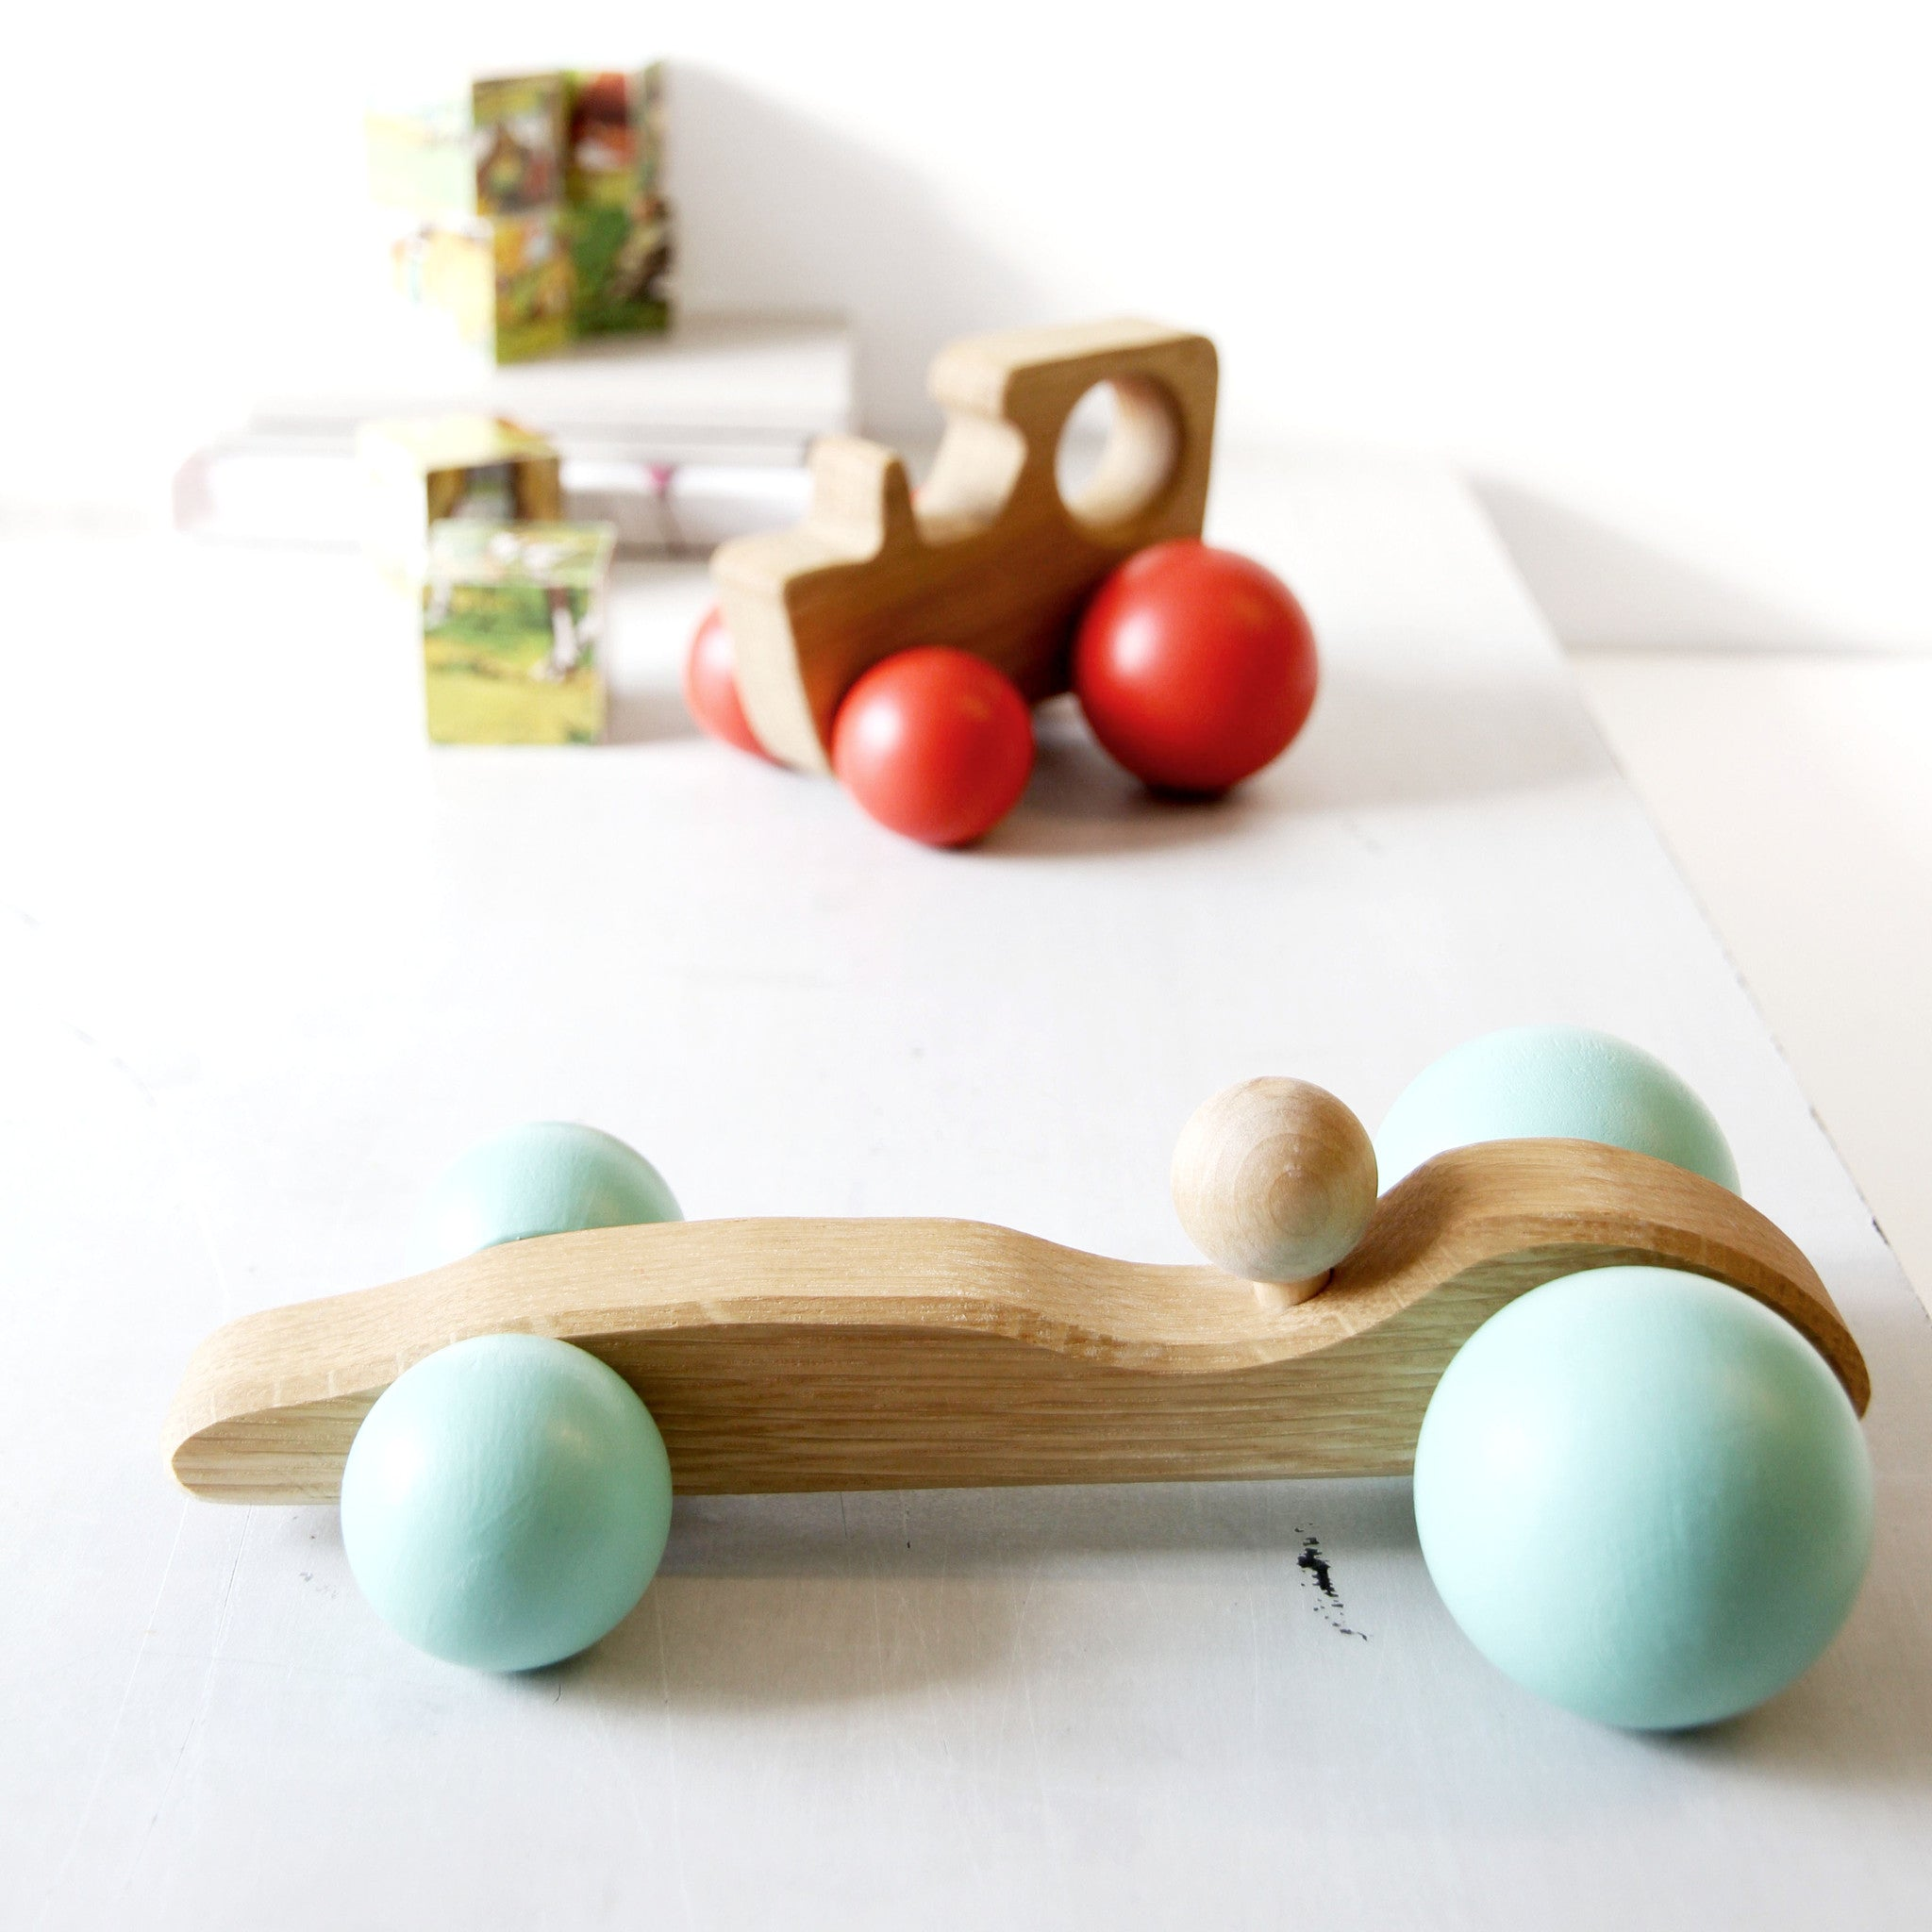 Charming handmade wooden toys with character